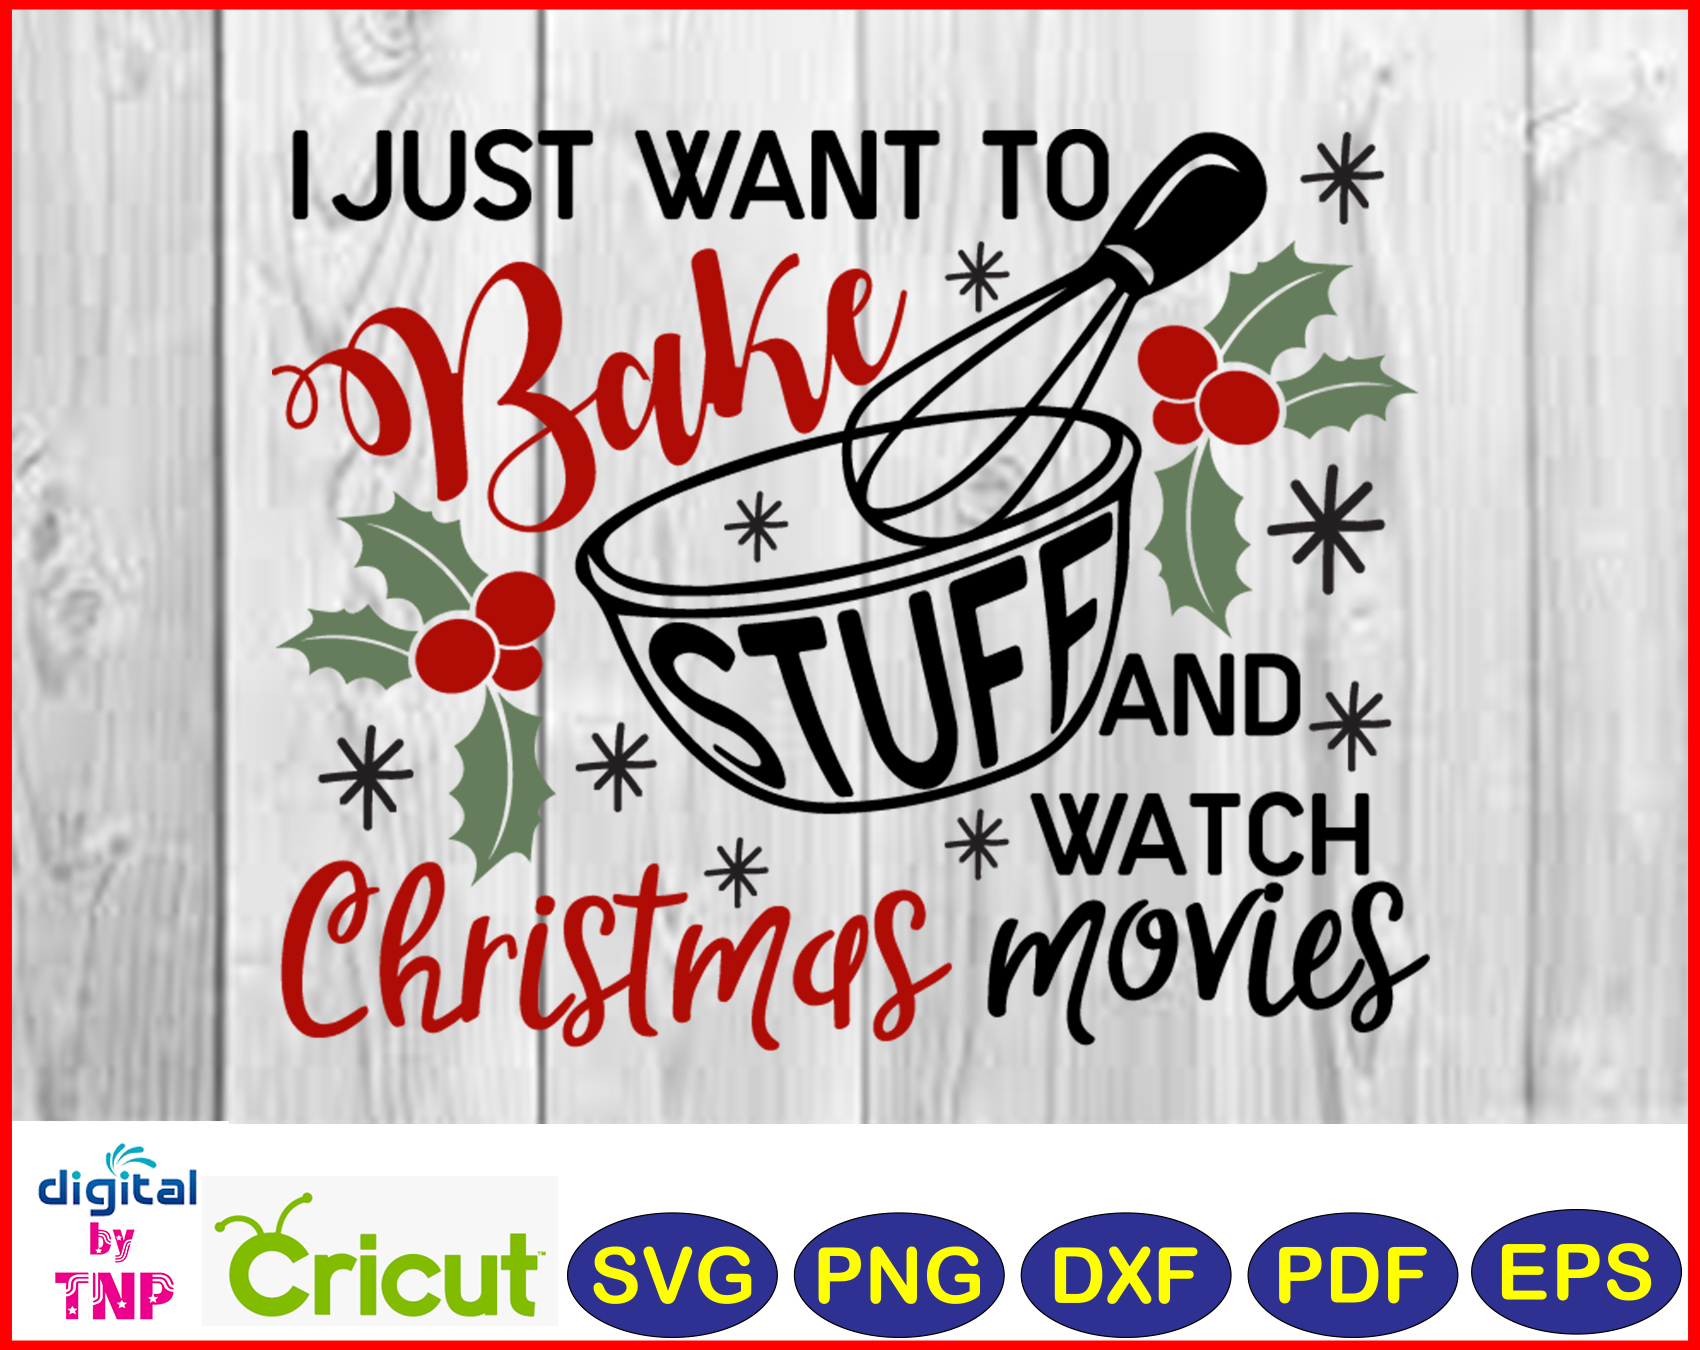 Bake Stuff And Watch Christmas Movies Svg Png Dxf Pdf Eps Christmas Svg Layered Cut Files Cricut Customer Satisfaction Is Our Priority